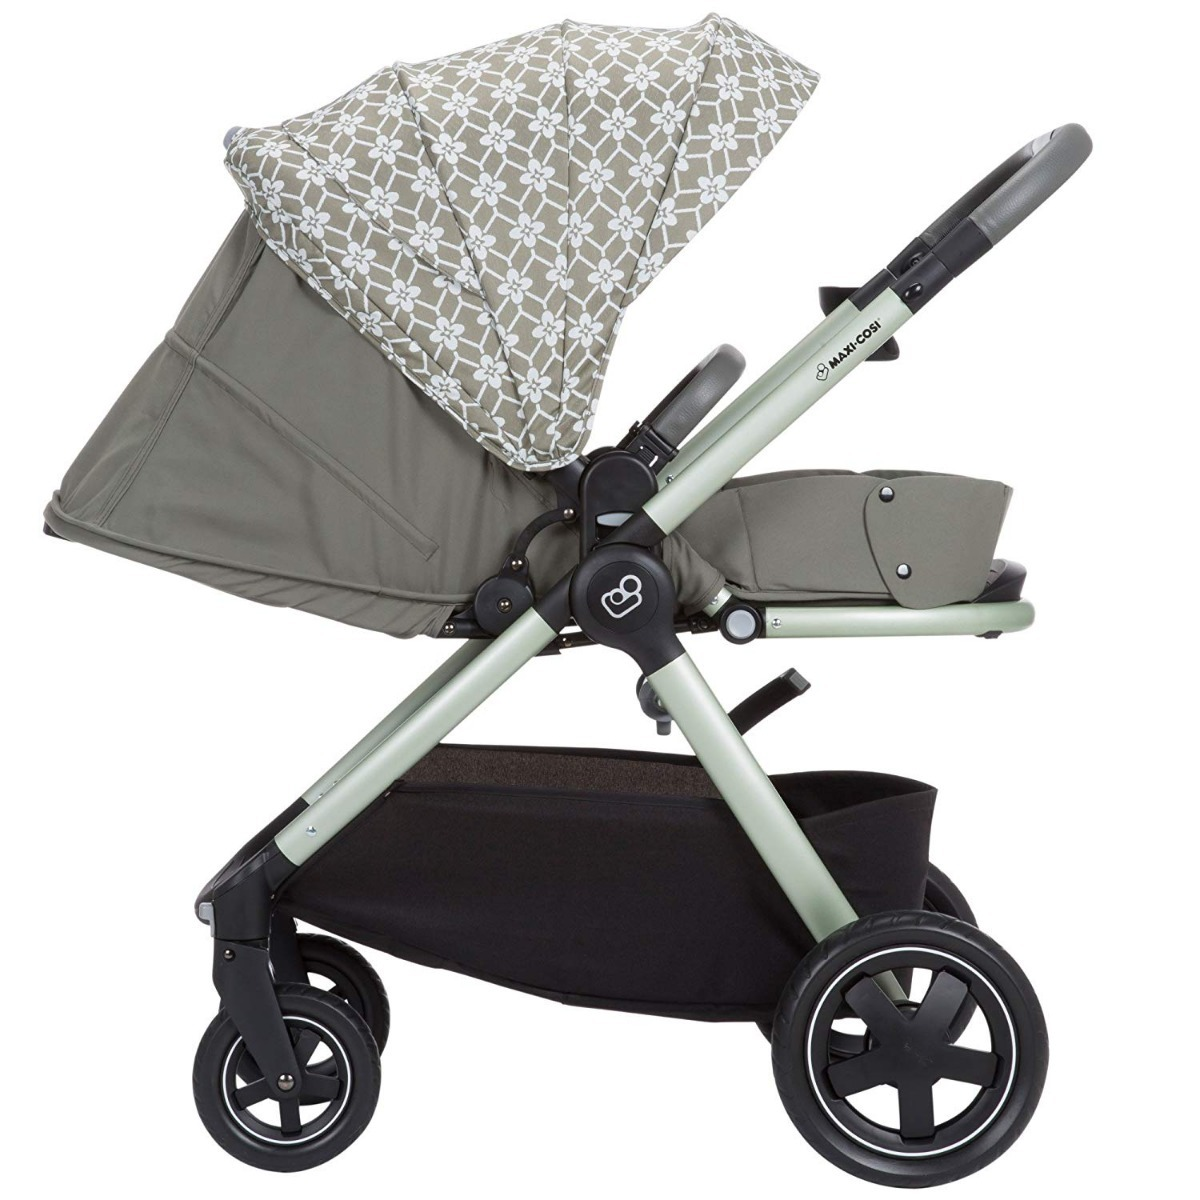 Maxi-cosi Adorra Travel System - Graphic Flower Carriola Maxi Cosi Adorra Modular Stroller Graphic Flower